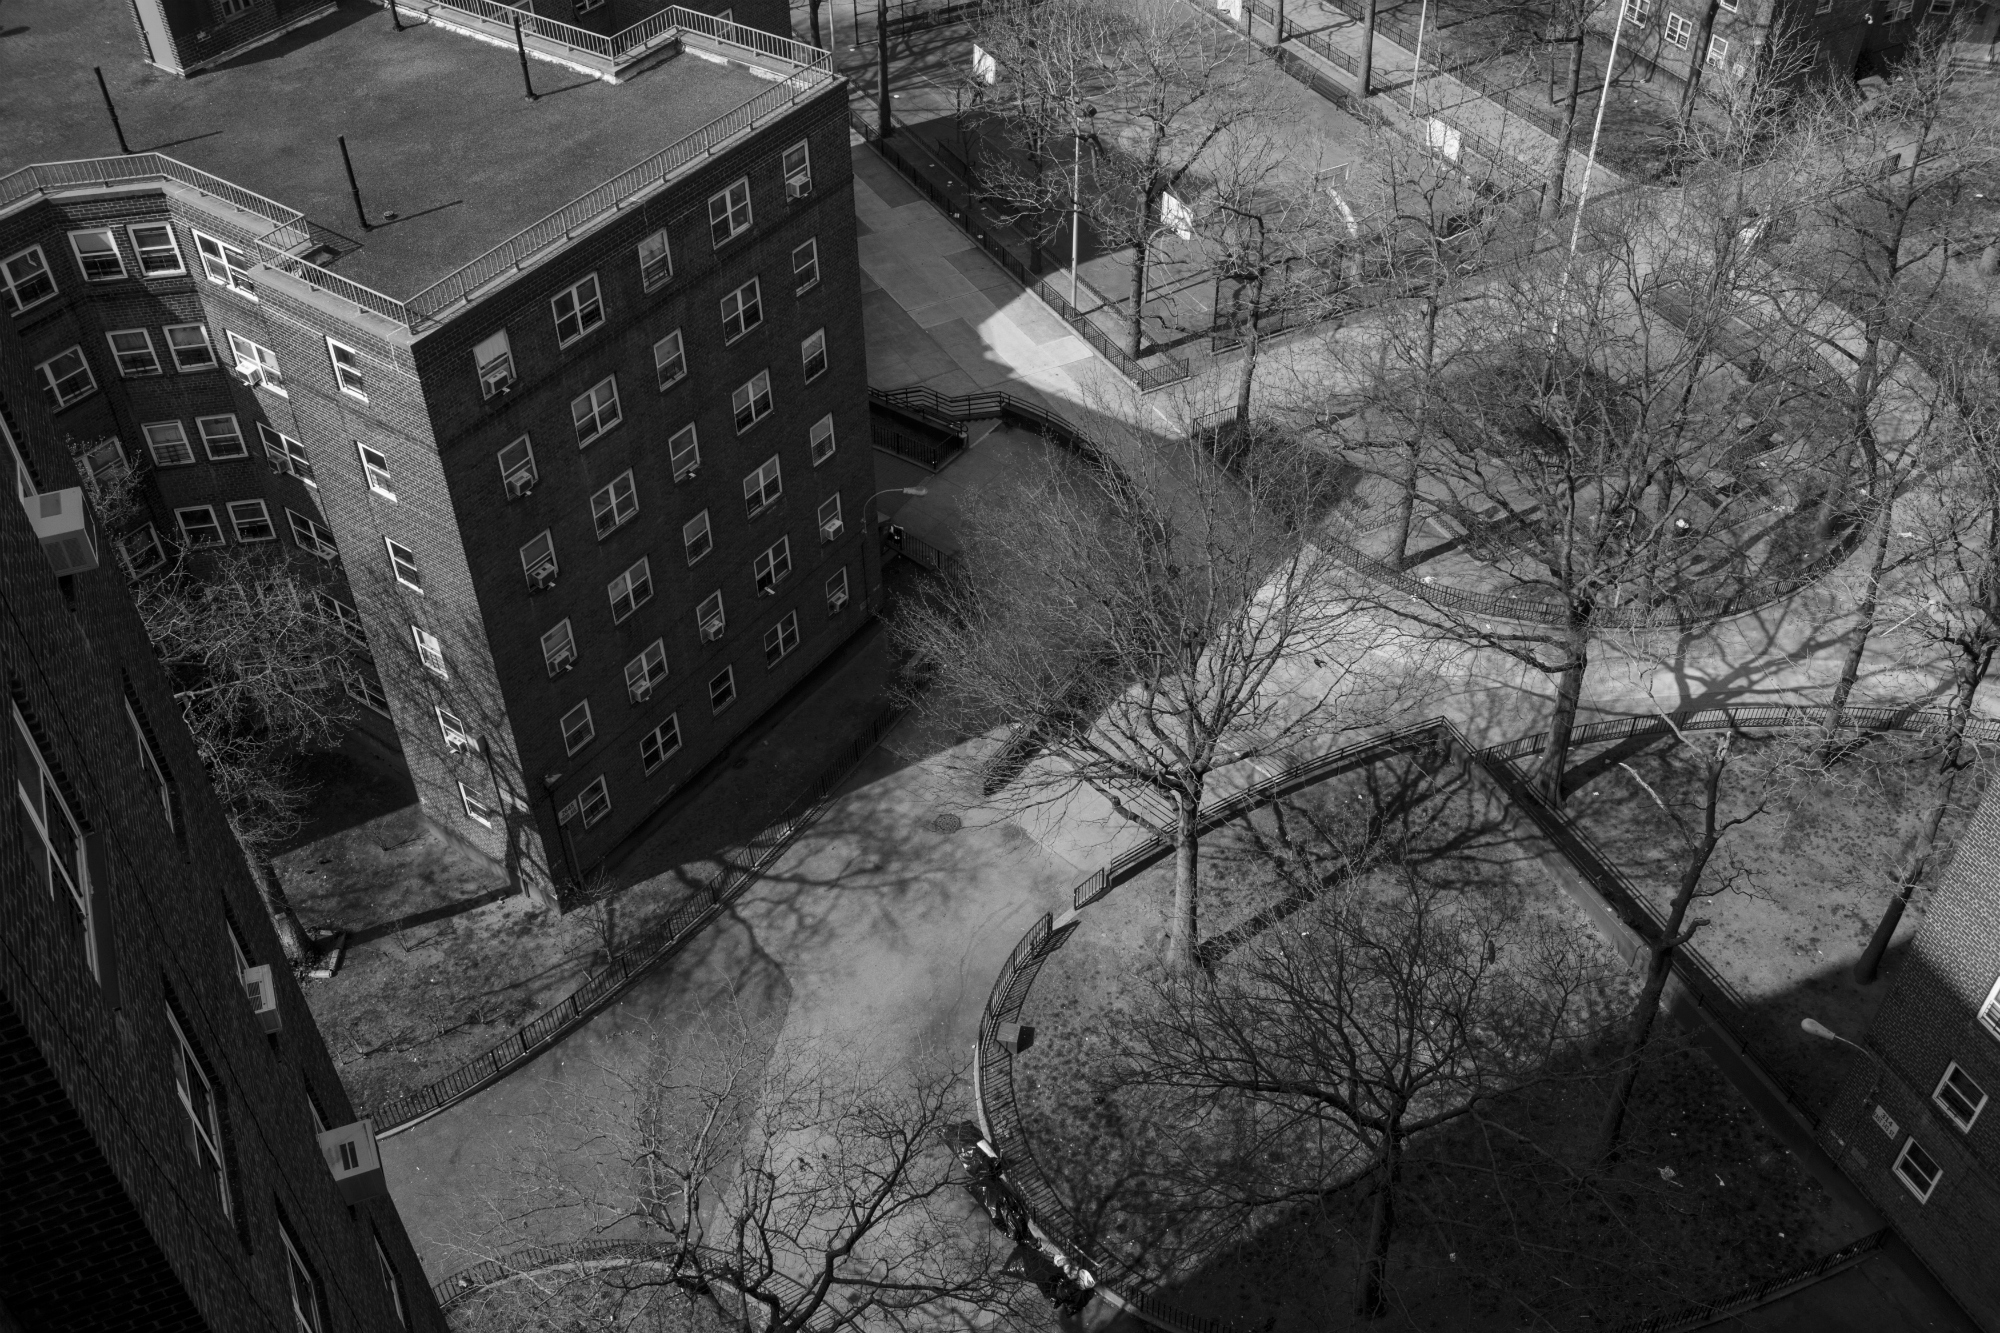 Mott Haven, March 27, 2016, New York City. Mott Haven stretches from the Harlem River on the west to Bruckner Expressway to the east. (Photo by Sarah Blesener/GroundTruth/Alexia Foundation)